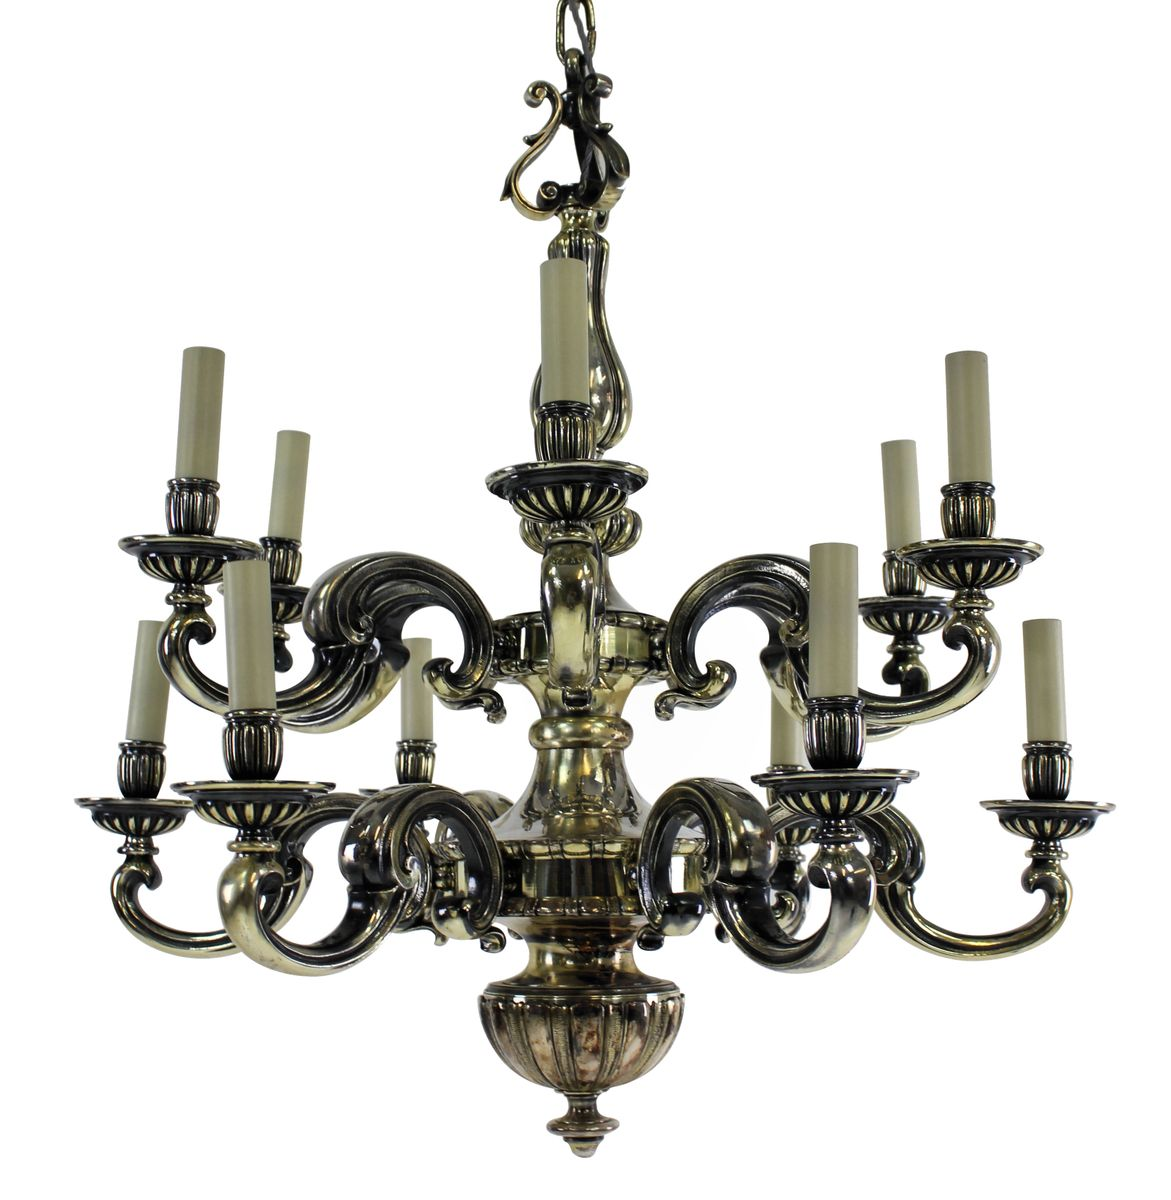 antique charles ii silver chandelier for sale at pamono - antique charles ii silver chandelier